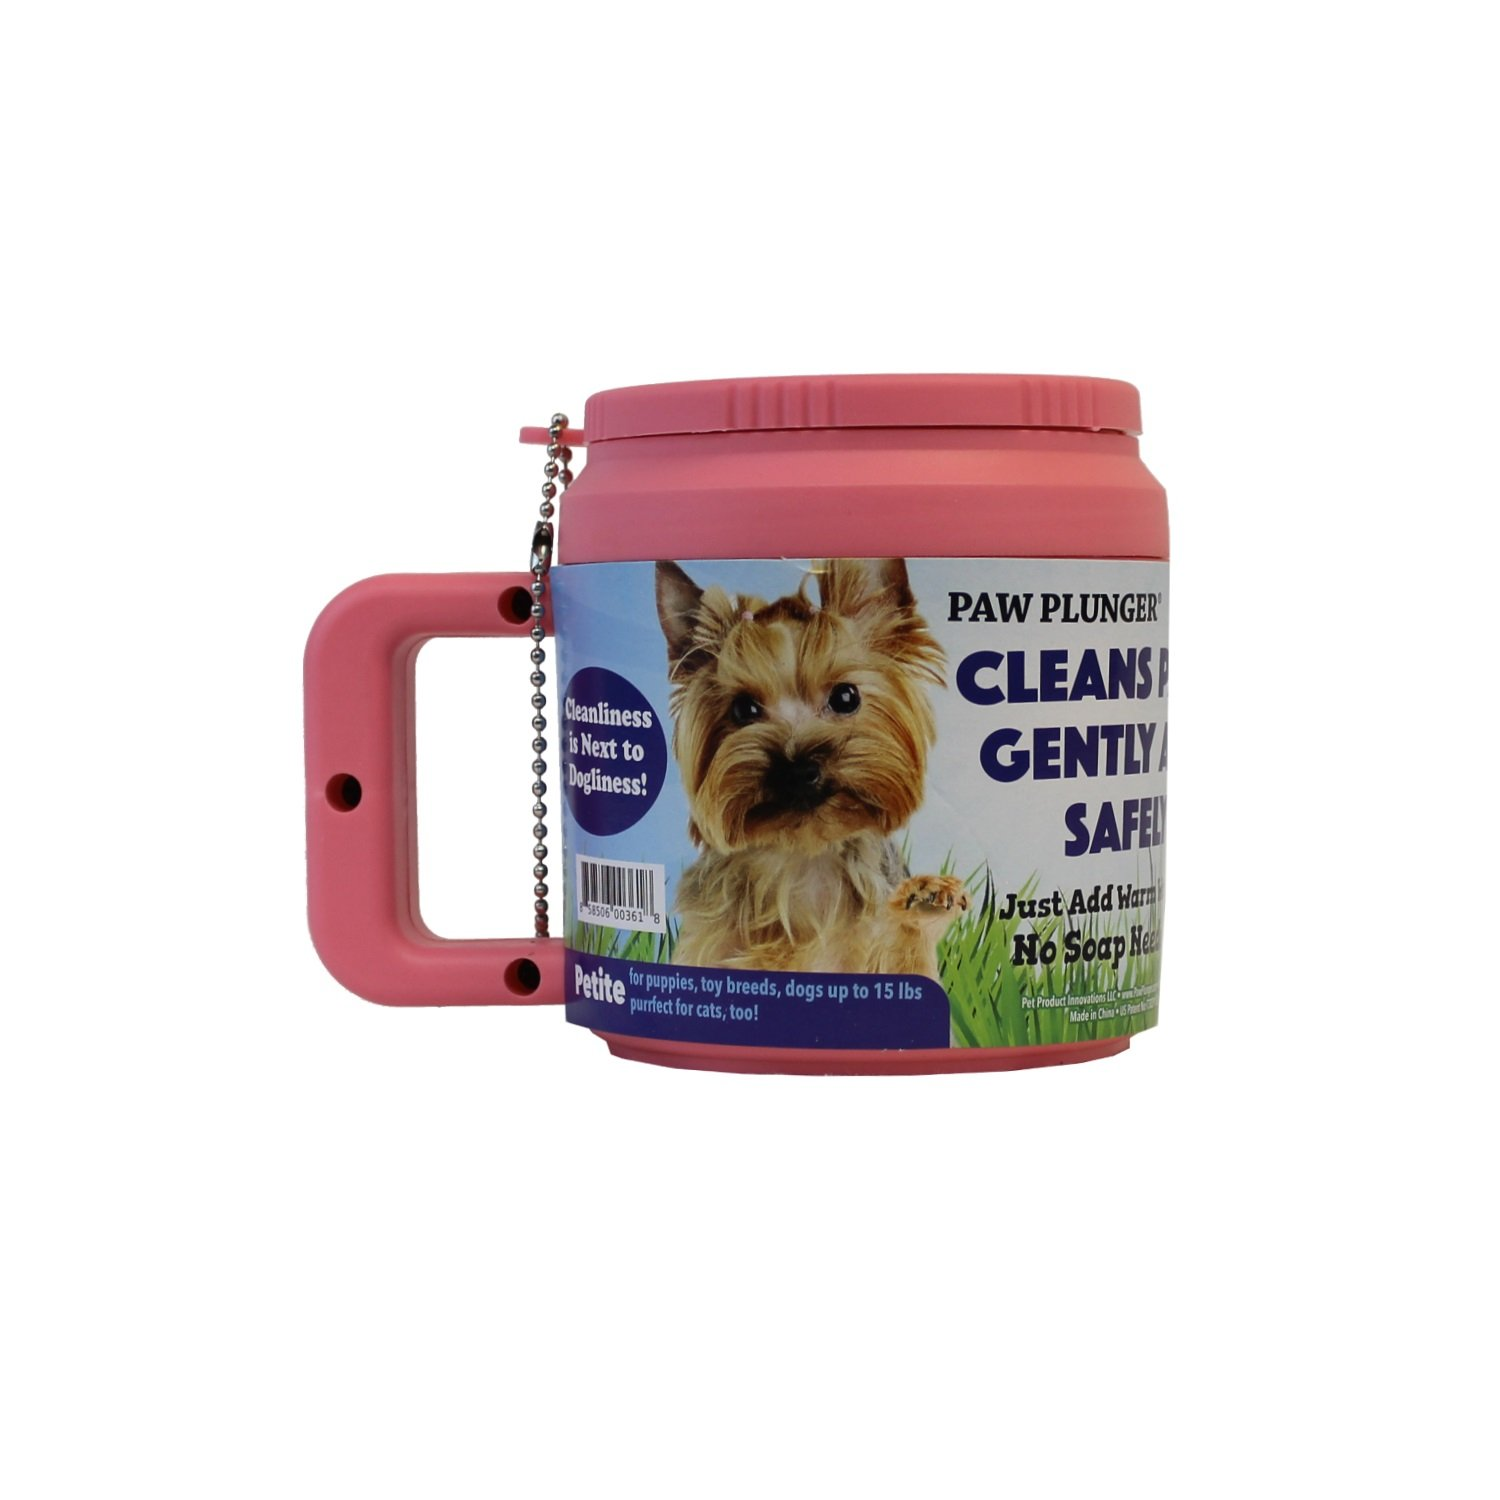 Plunger For Dogs - Portable Paw Cleaner For Small Sized Dogs - Ideal For Dogs Weighing Up To 15lbs - an Easy To Use Device To Save Your Home / Furniture / Carpet / Vehicle From Muddy Paws - Pink